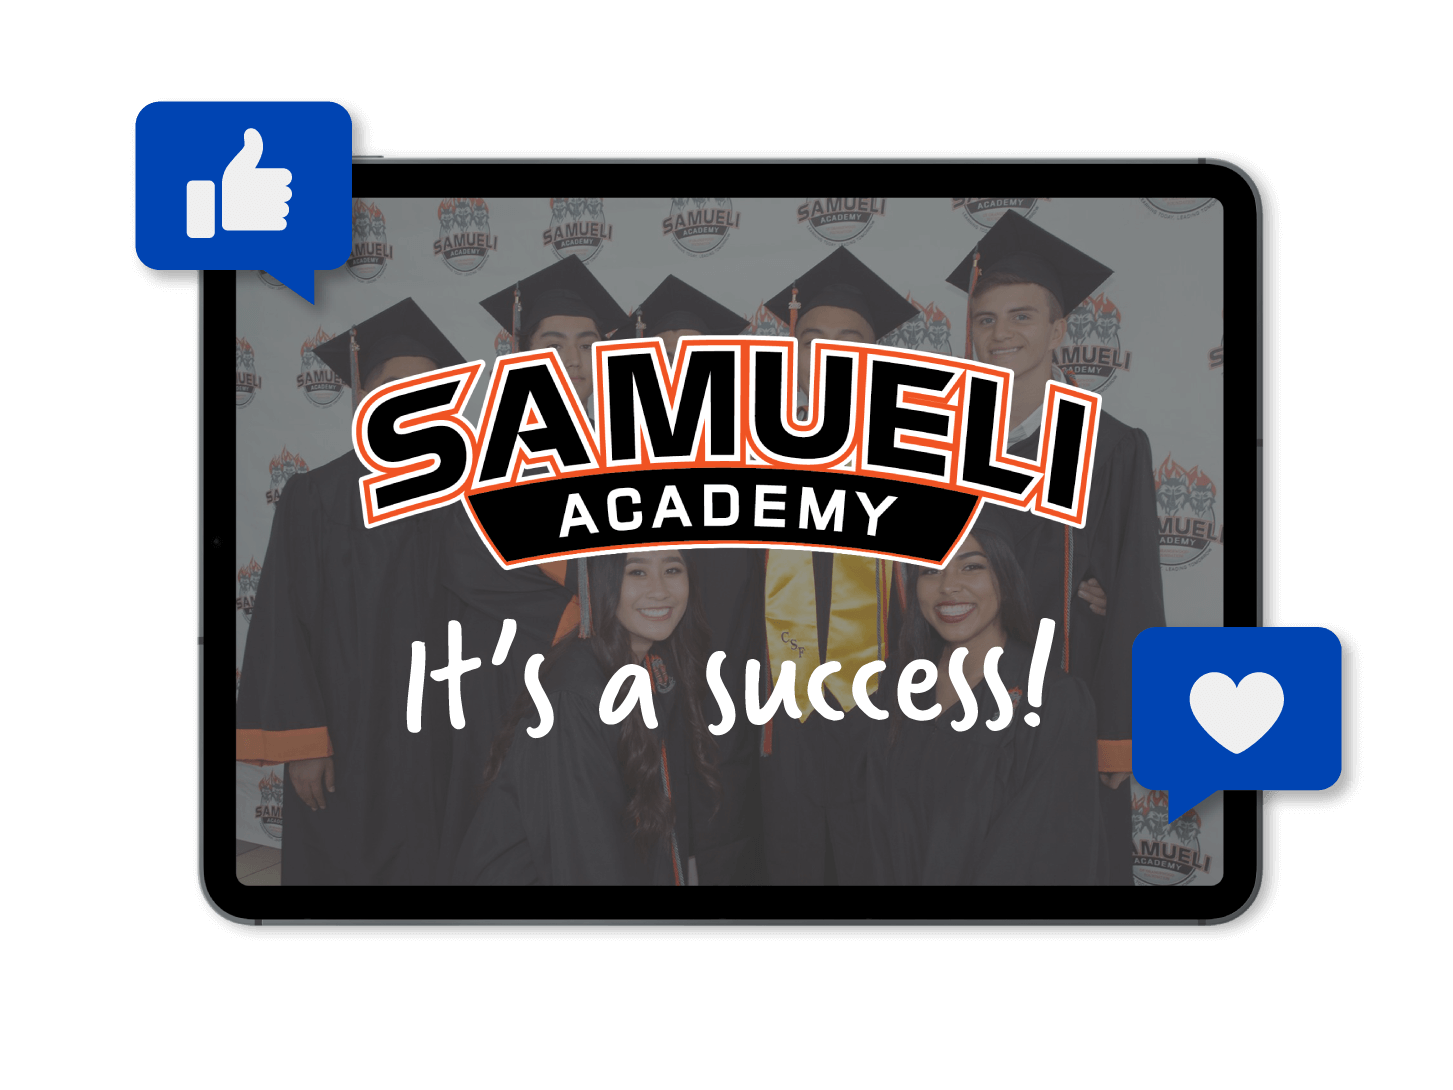 How Samueli Academy uses personalized email campaigns to engage its online alumni community